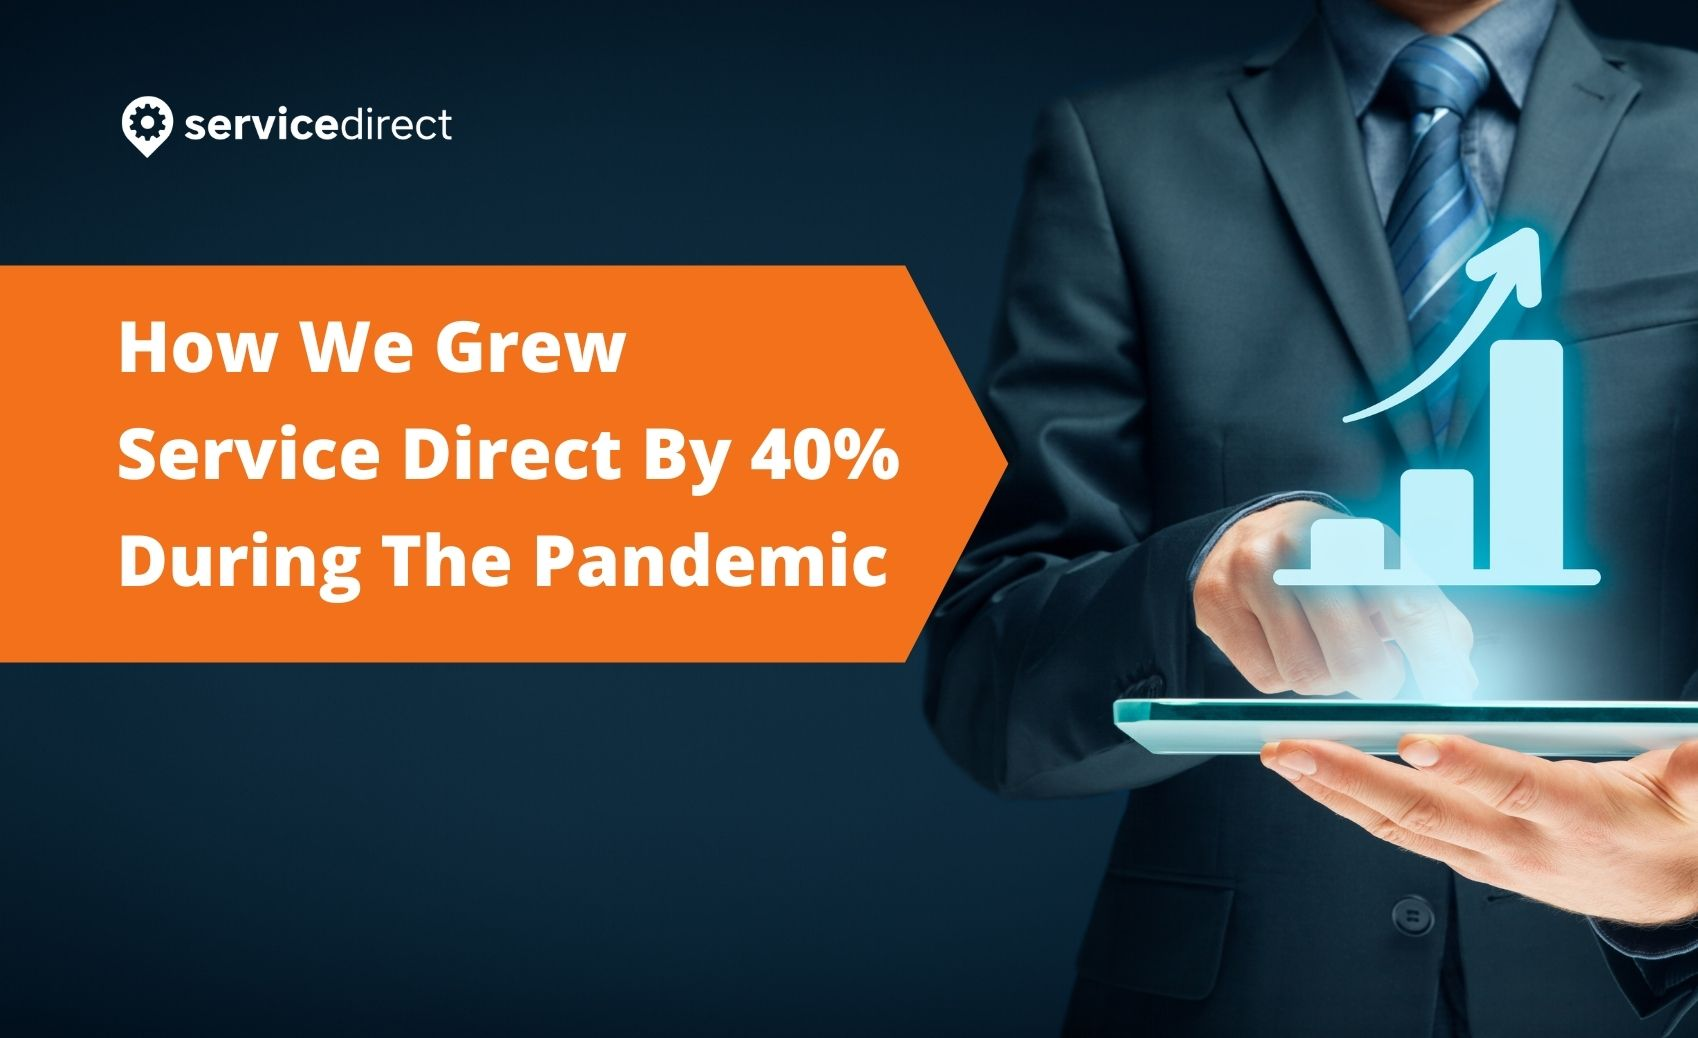 How We Grew Service Direct By 40% During The Pandemic